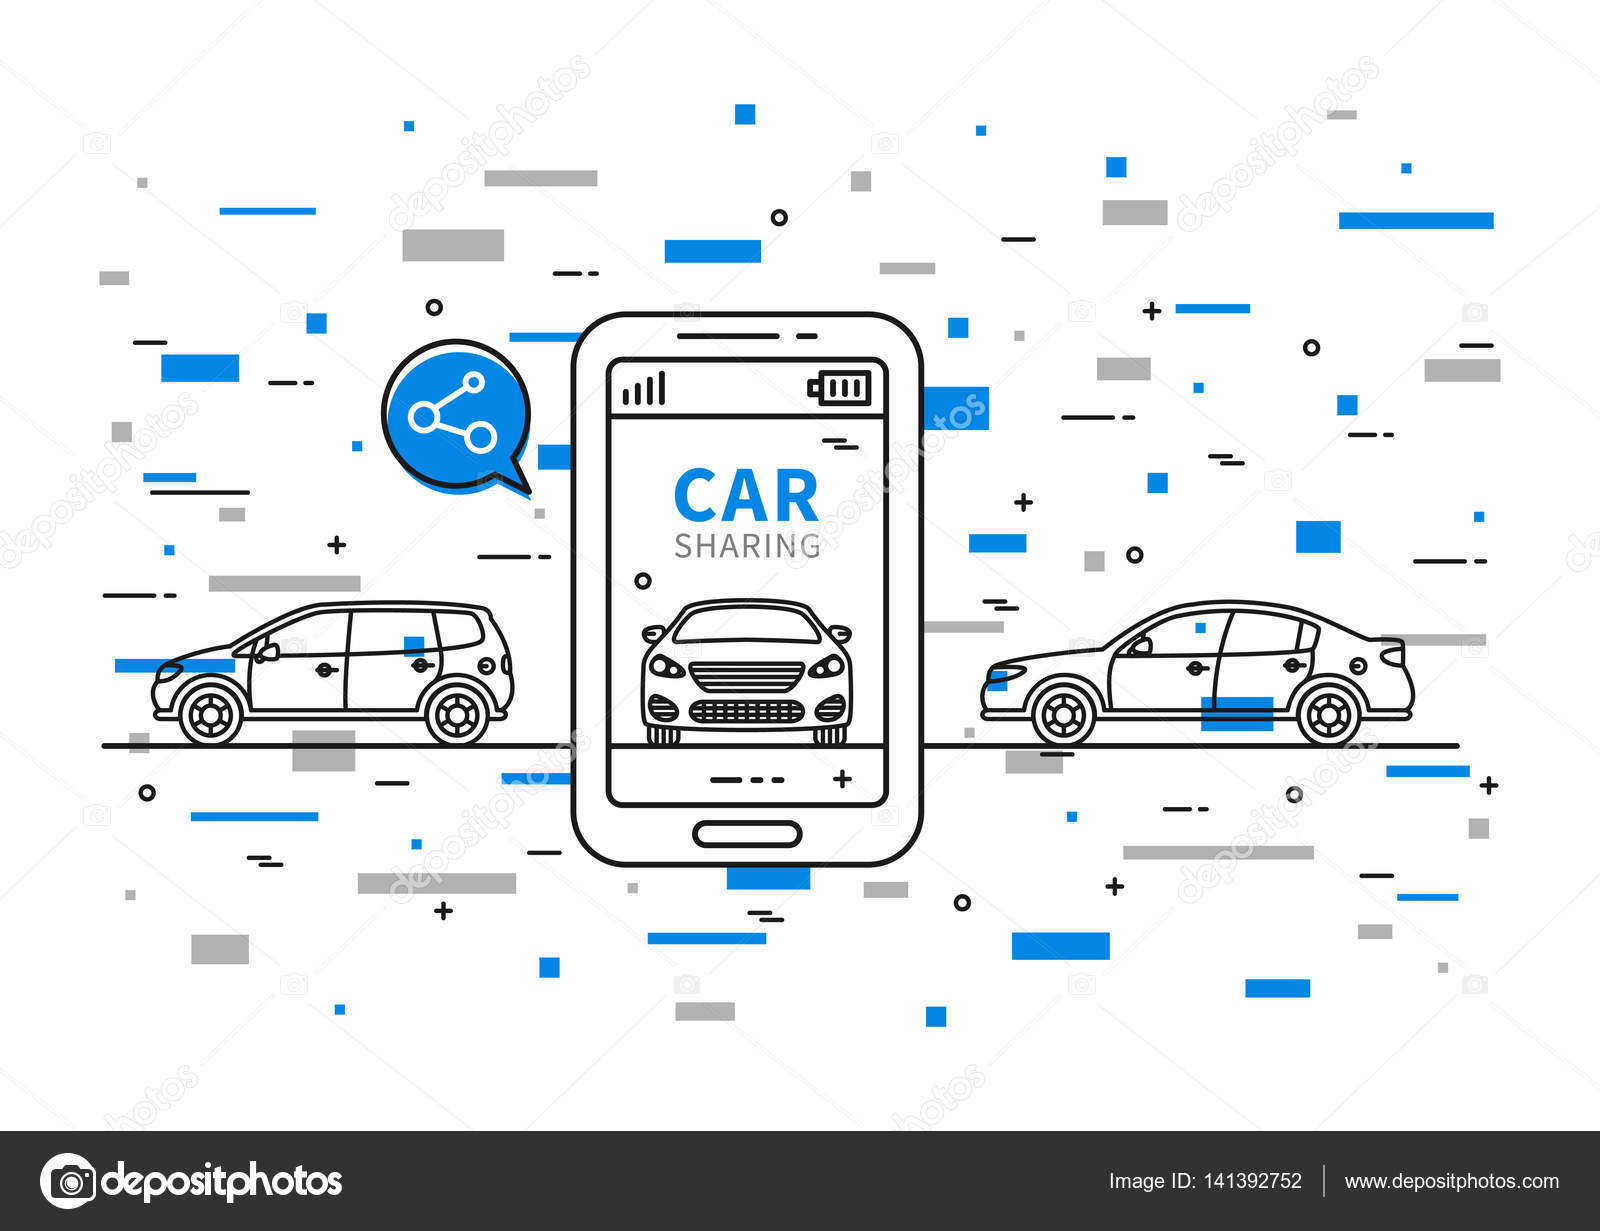 About Enterprise Carshare It's a car sharing program in your community that allows you to reserve a car by the hour for one, all-inclusive price. Unlike traditional rental, you only have to be 21 years old* to share in your community.